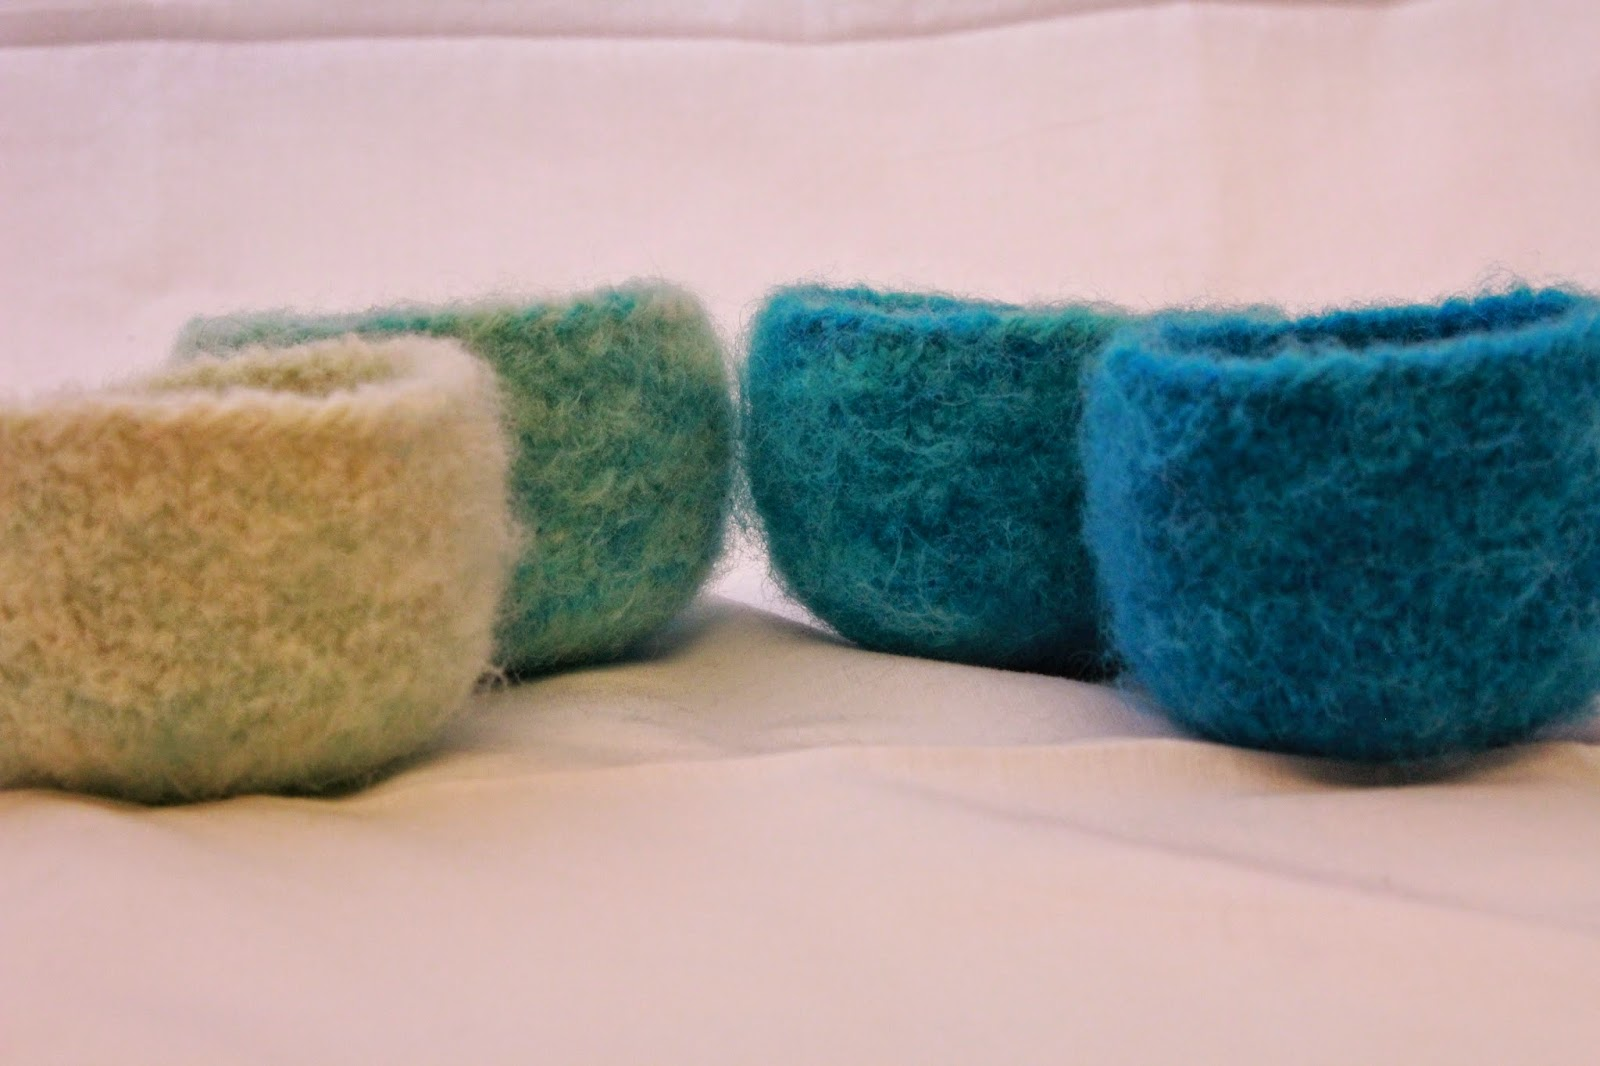 Emilys Knitted Whimsy: Pattern - Ombre Felted Trinket Bowls in Two Sizes